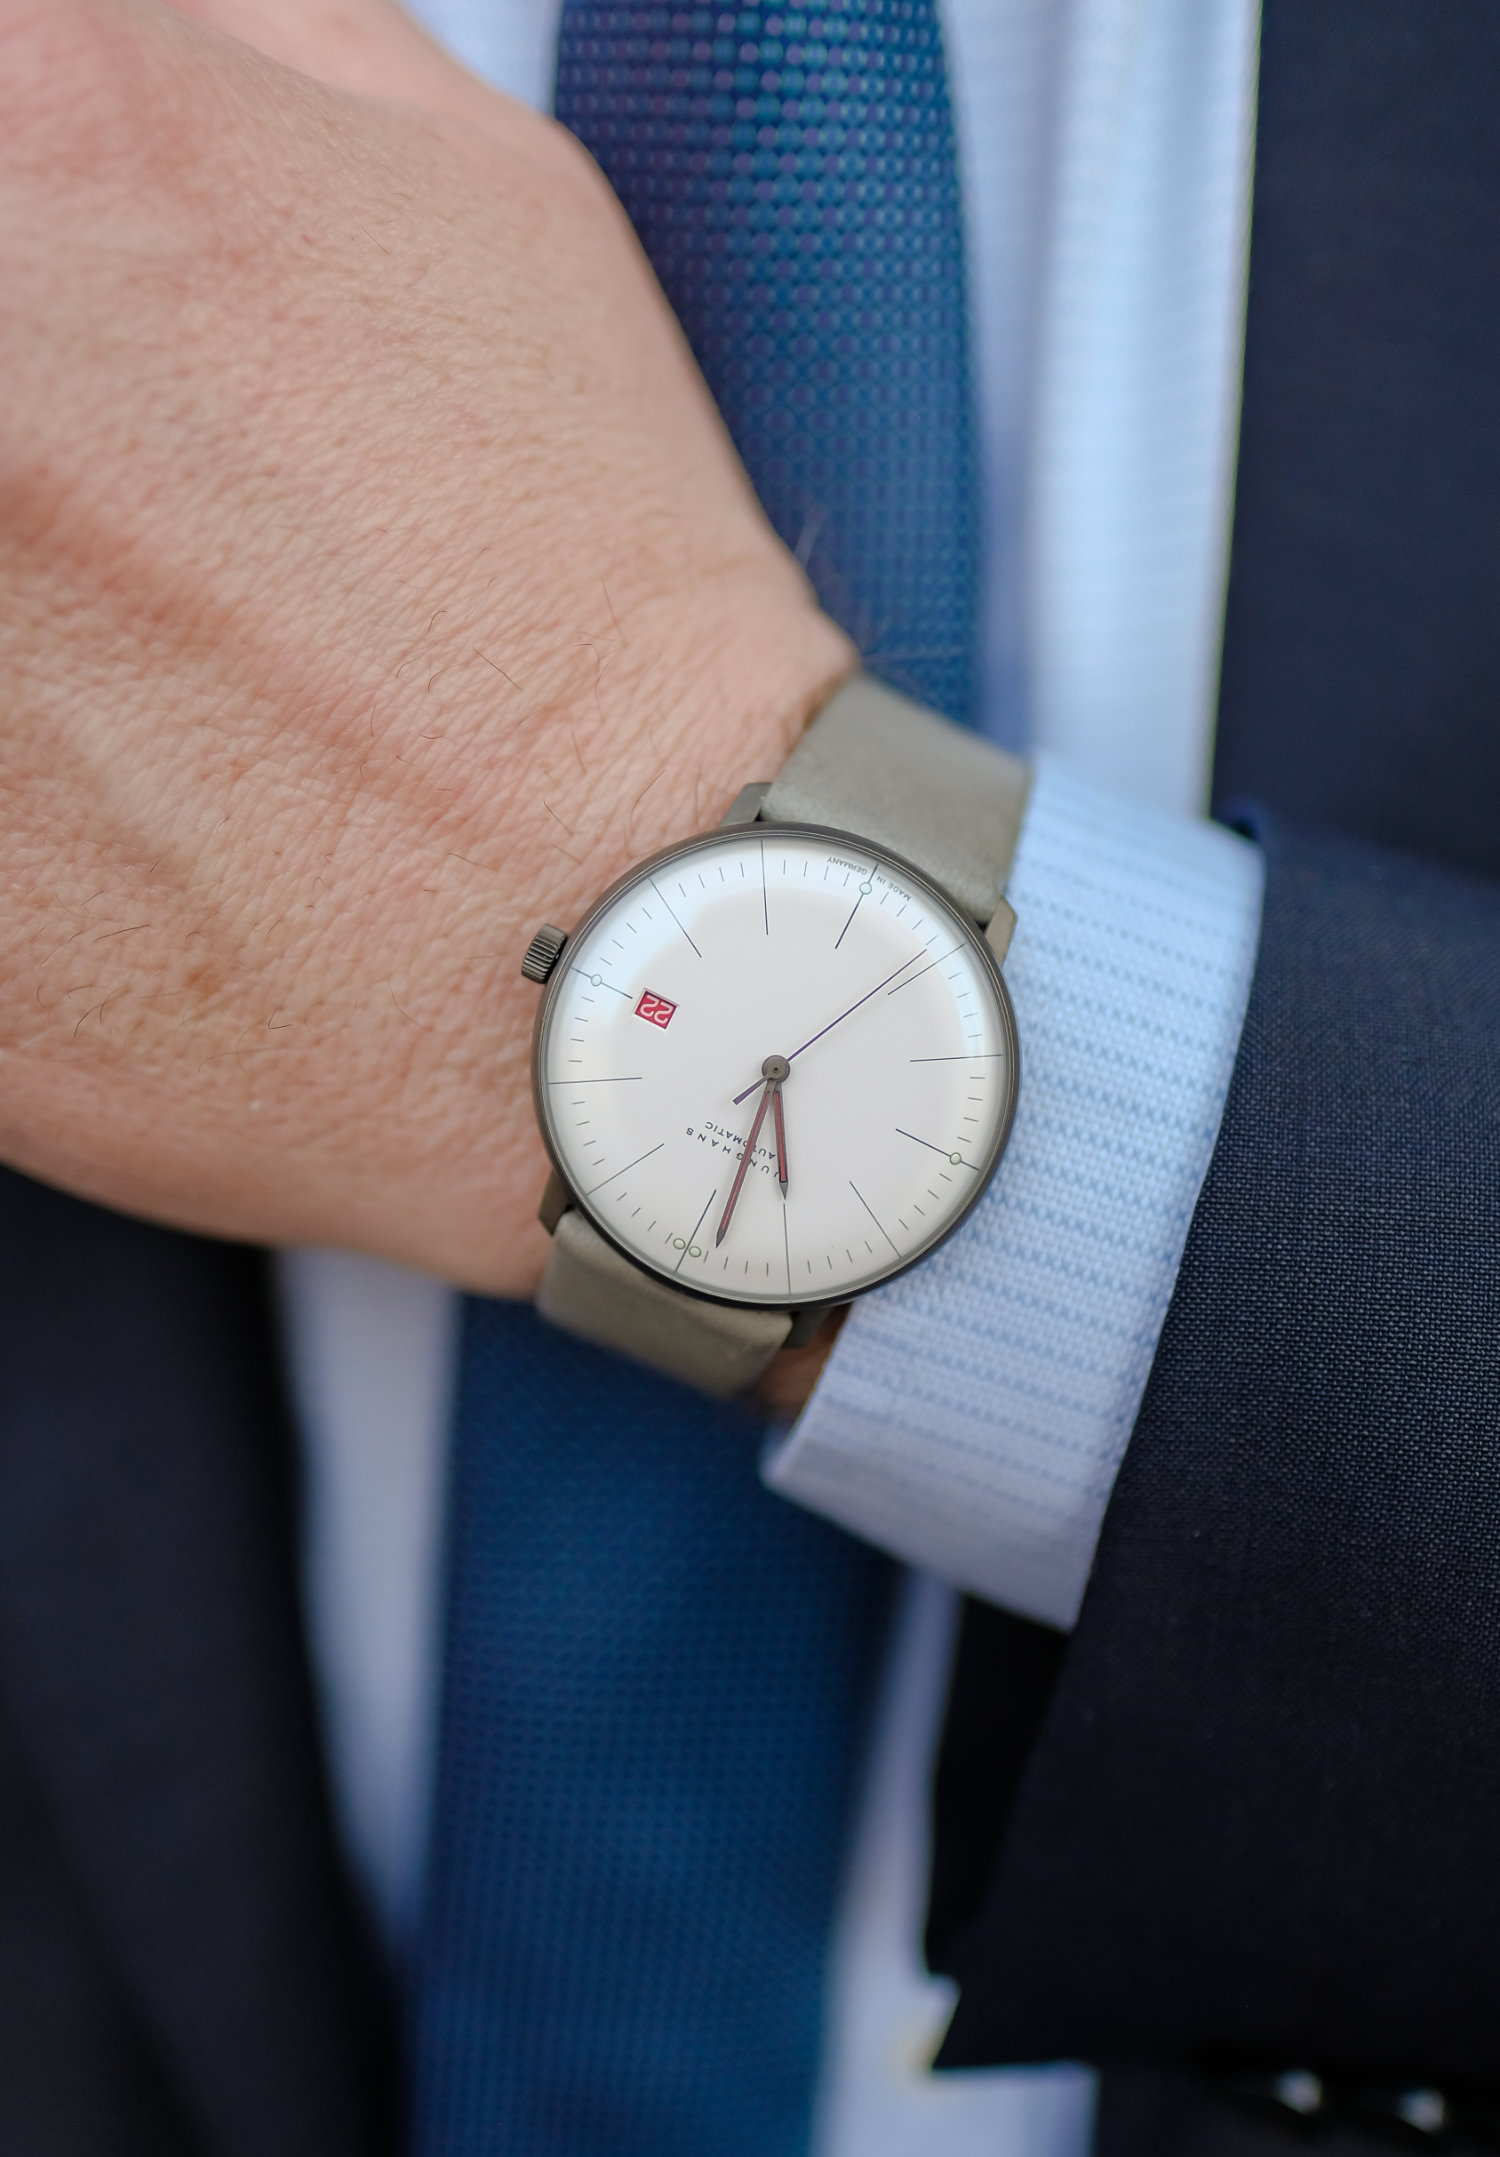 100 Years of Bauhaus with Junghans The Hour Glass